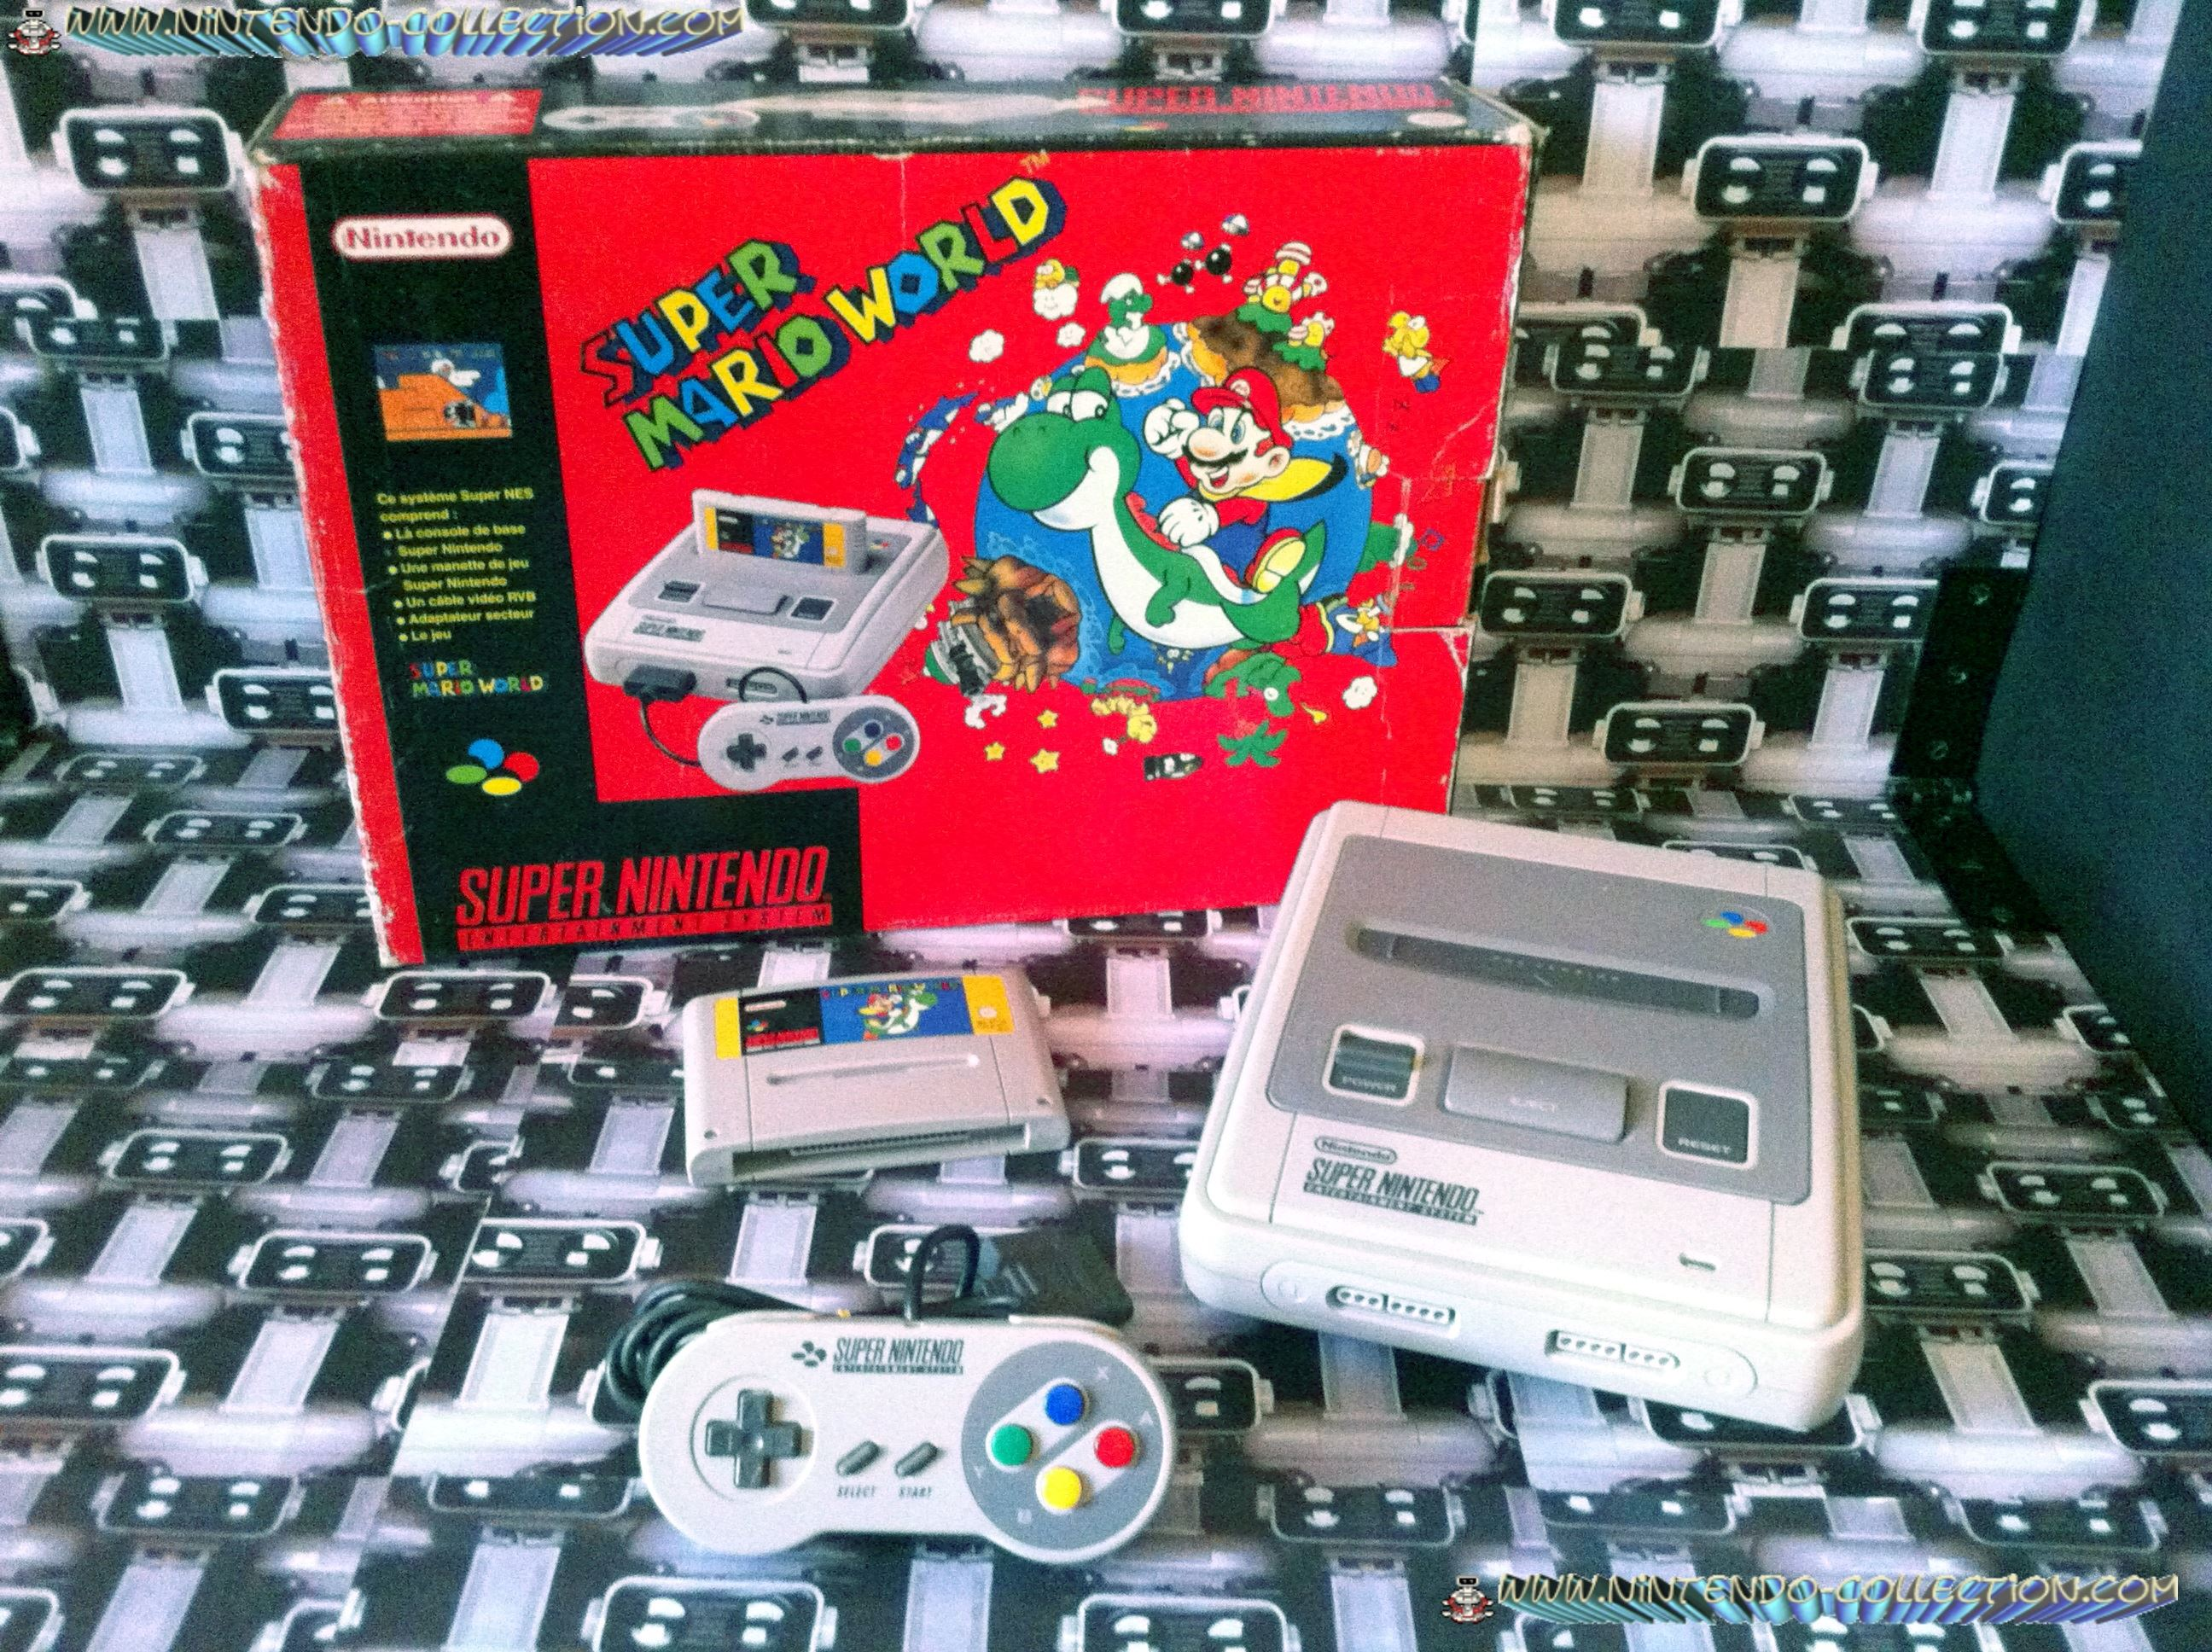 www.nintendo-collection.com - Super Nintendo Super Famicom Super Nes Pack Super Mario World Rouge Re